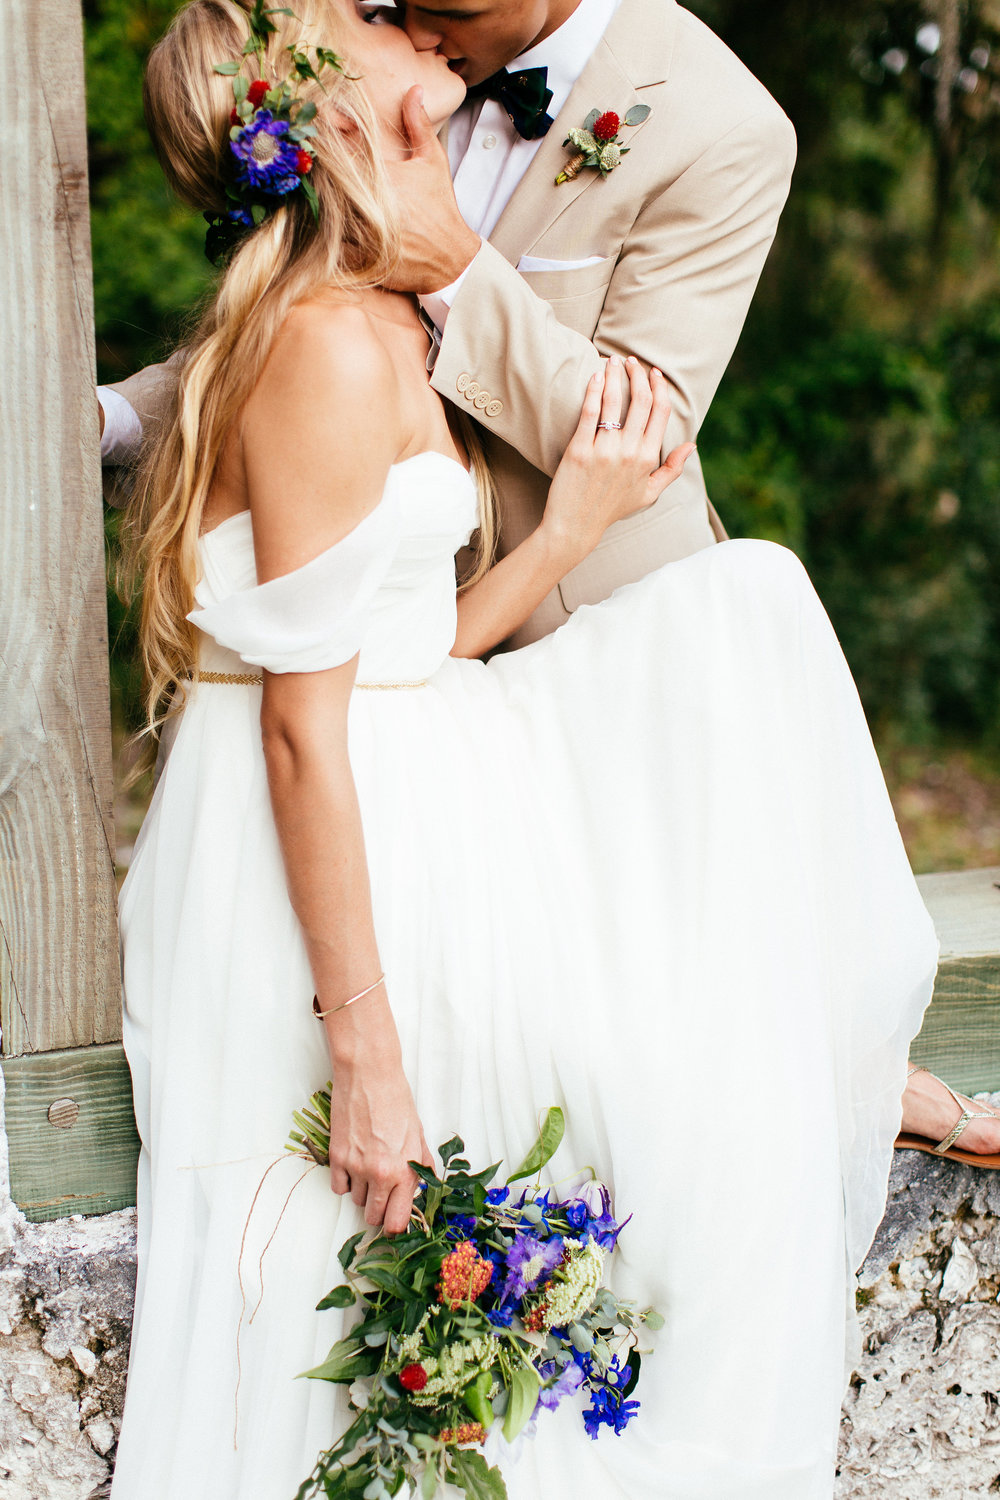 christina-karst-photography-ivory-and-beau-bridal-boutique-sarah-seven-lafayette-boho-bride-boho-bridal-boutique-indie-bridal-boutique-savannah-bridal-boutique-savannah-wedding-dresses-savannah-bridal-gowns-24.jpg